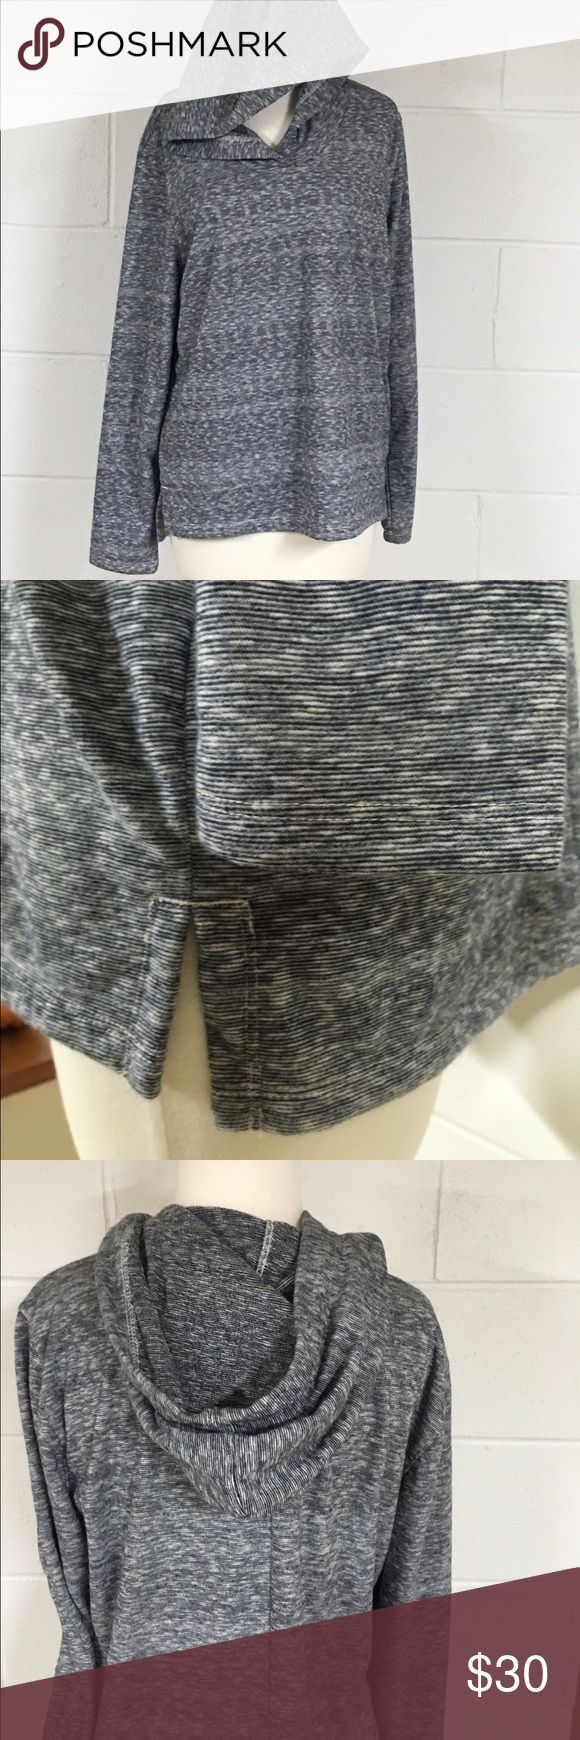 Women's GAP pull over hooded sweatshirt. NWOT, dark blue and white in color (but looks more black in pics-sorry 😬).  No pockets. Warmer material. GAP Tops Sweatshirts & Hoodies